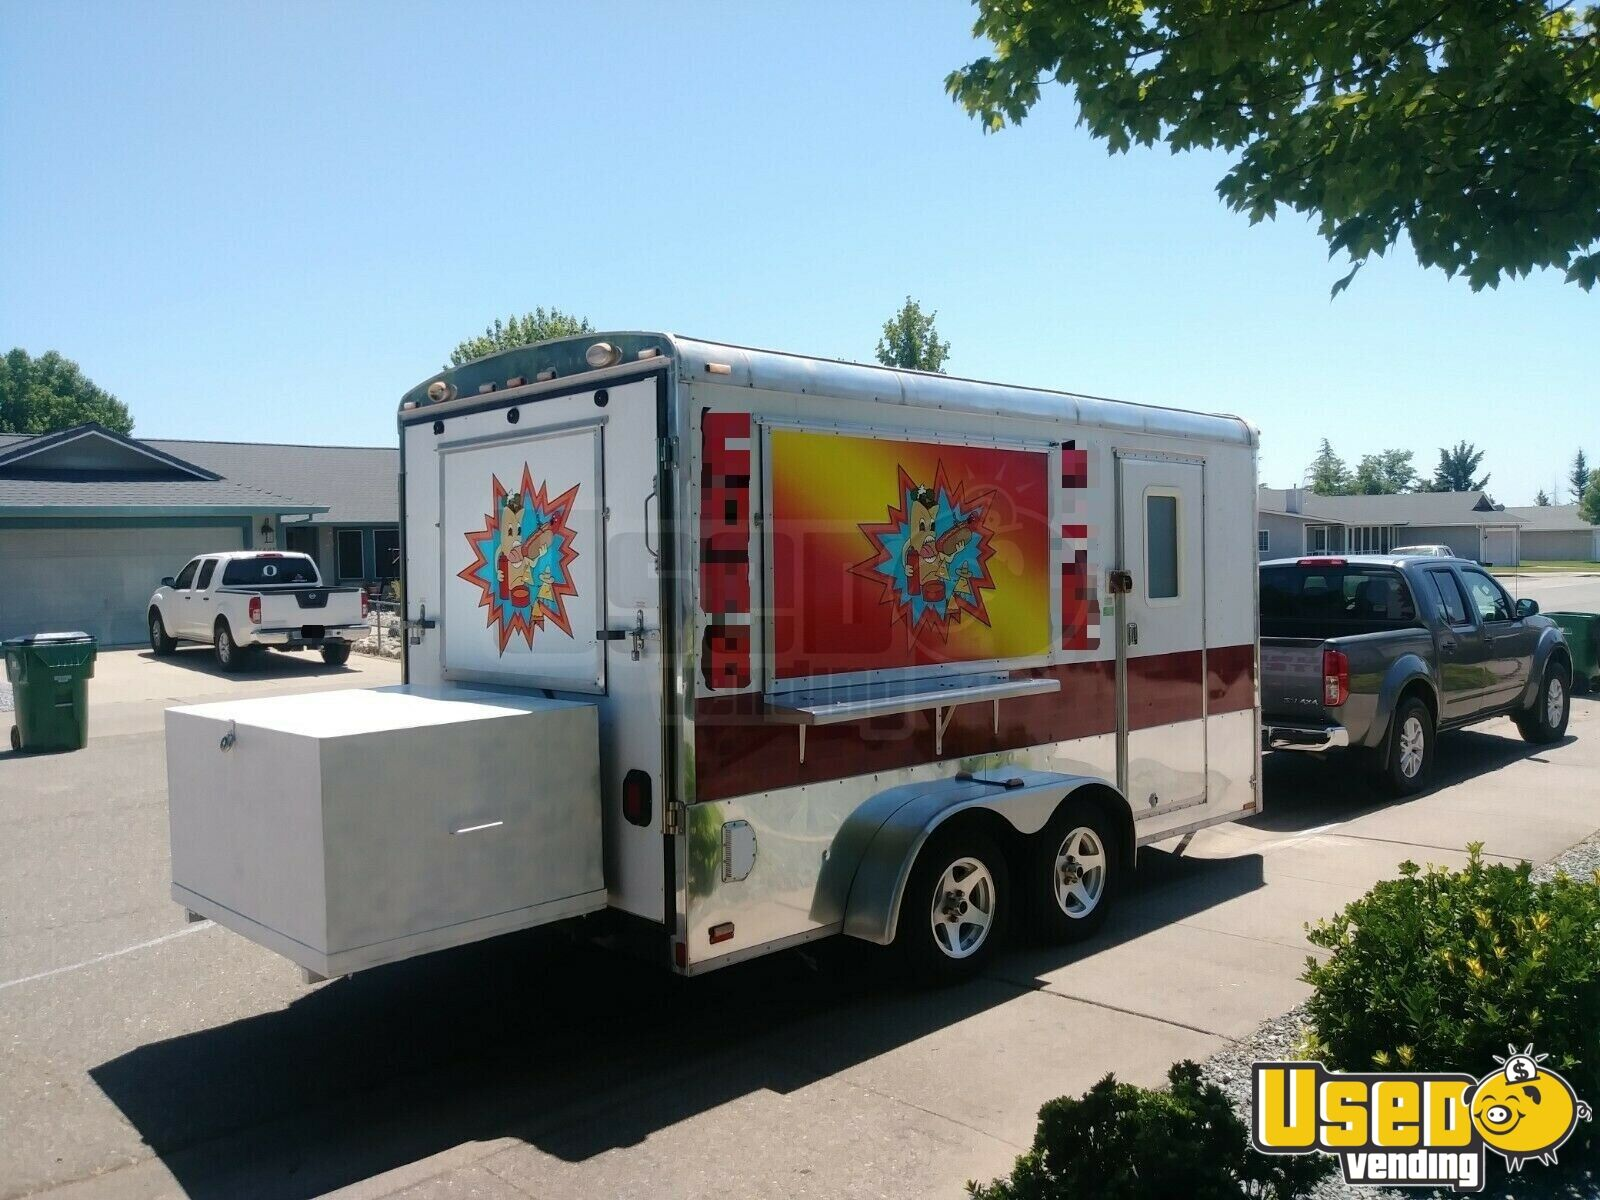 2004 Food Concession Trailer Concession Trailer Concession Window California for Sale - 3